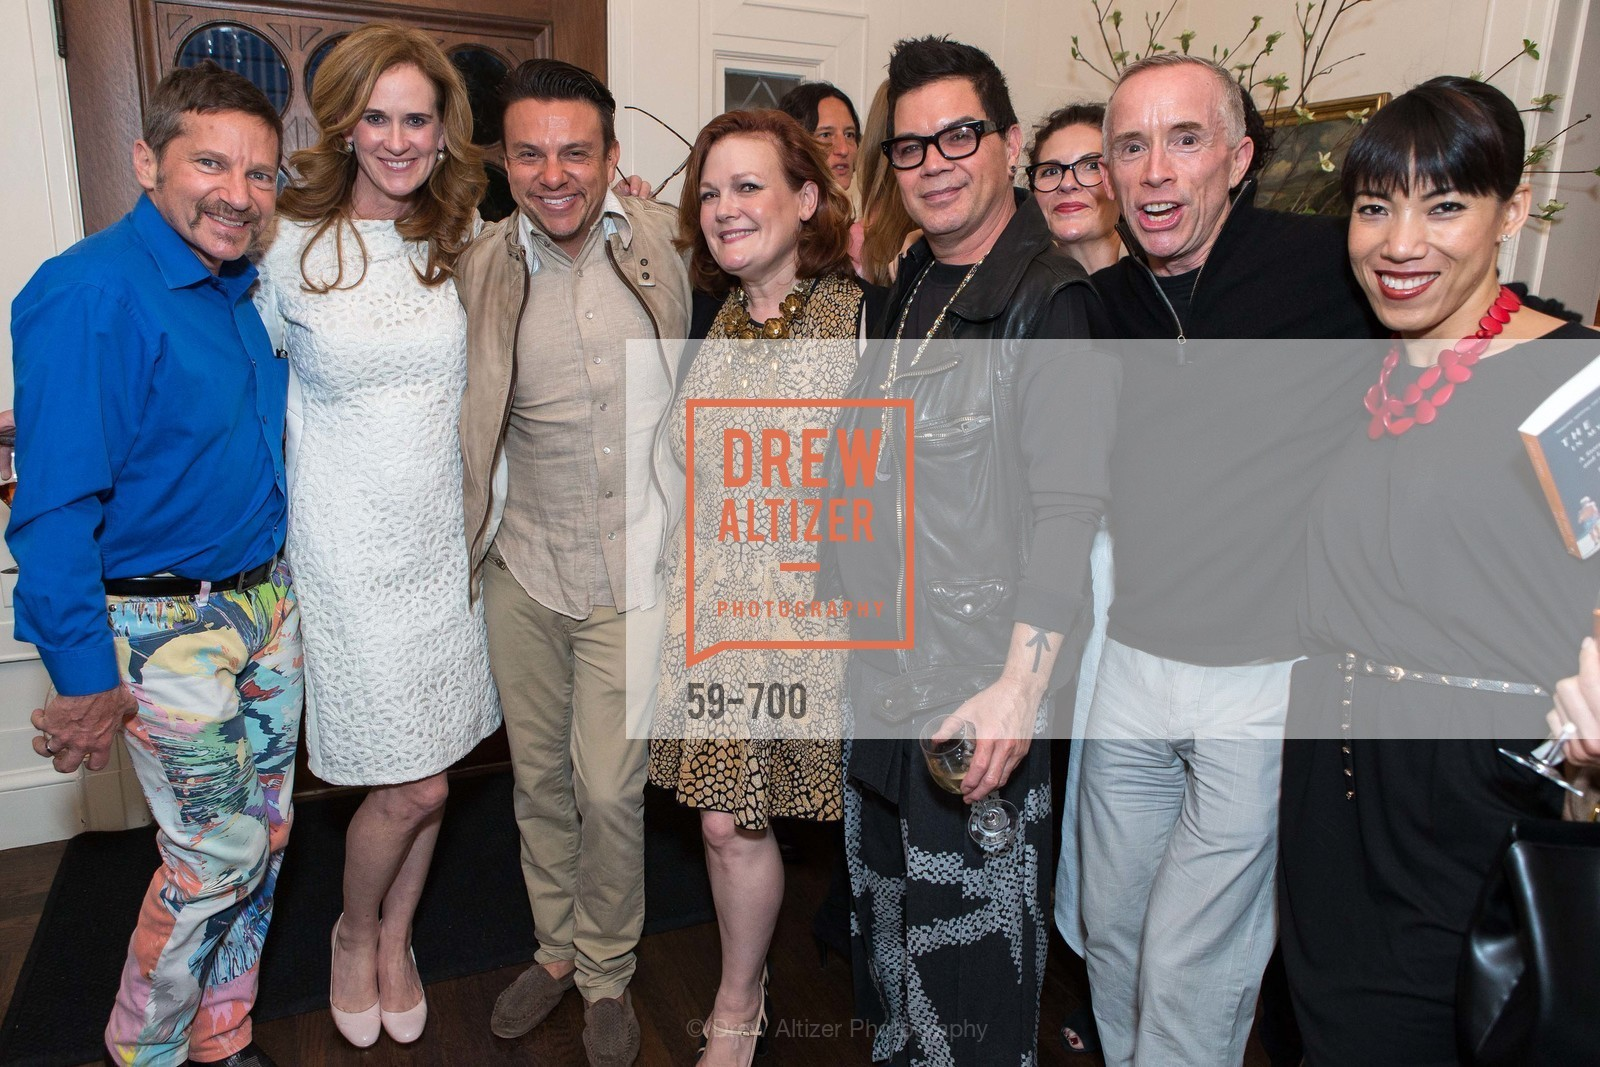 Eric Jansen, Sukey Forbes, Jennifer Raiser, David Reposar, Maurice Kelly, SUKEY FORBES' Book Signing, US, May 7th, 2015,Drew Altizer, Drew Altizer Photography, full-service agency, private events, San Francisco photographer, photographer california